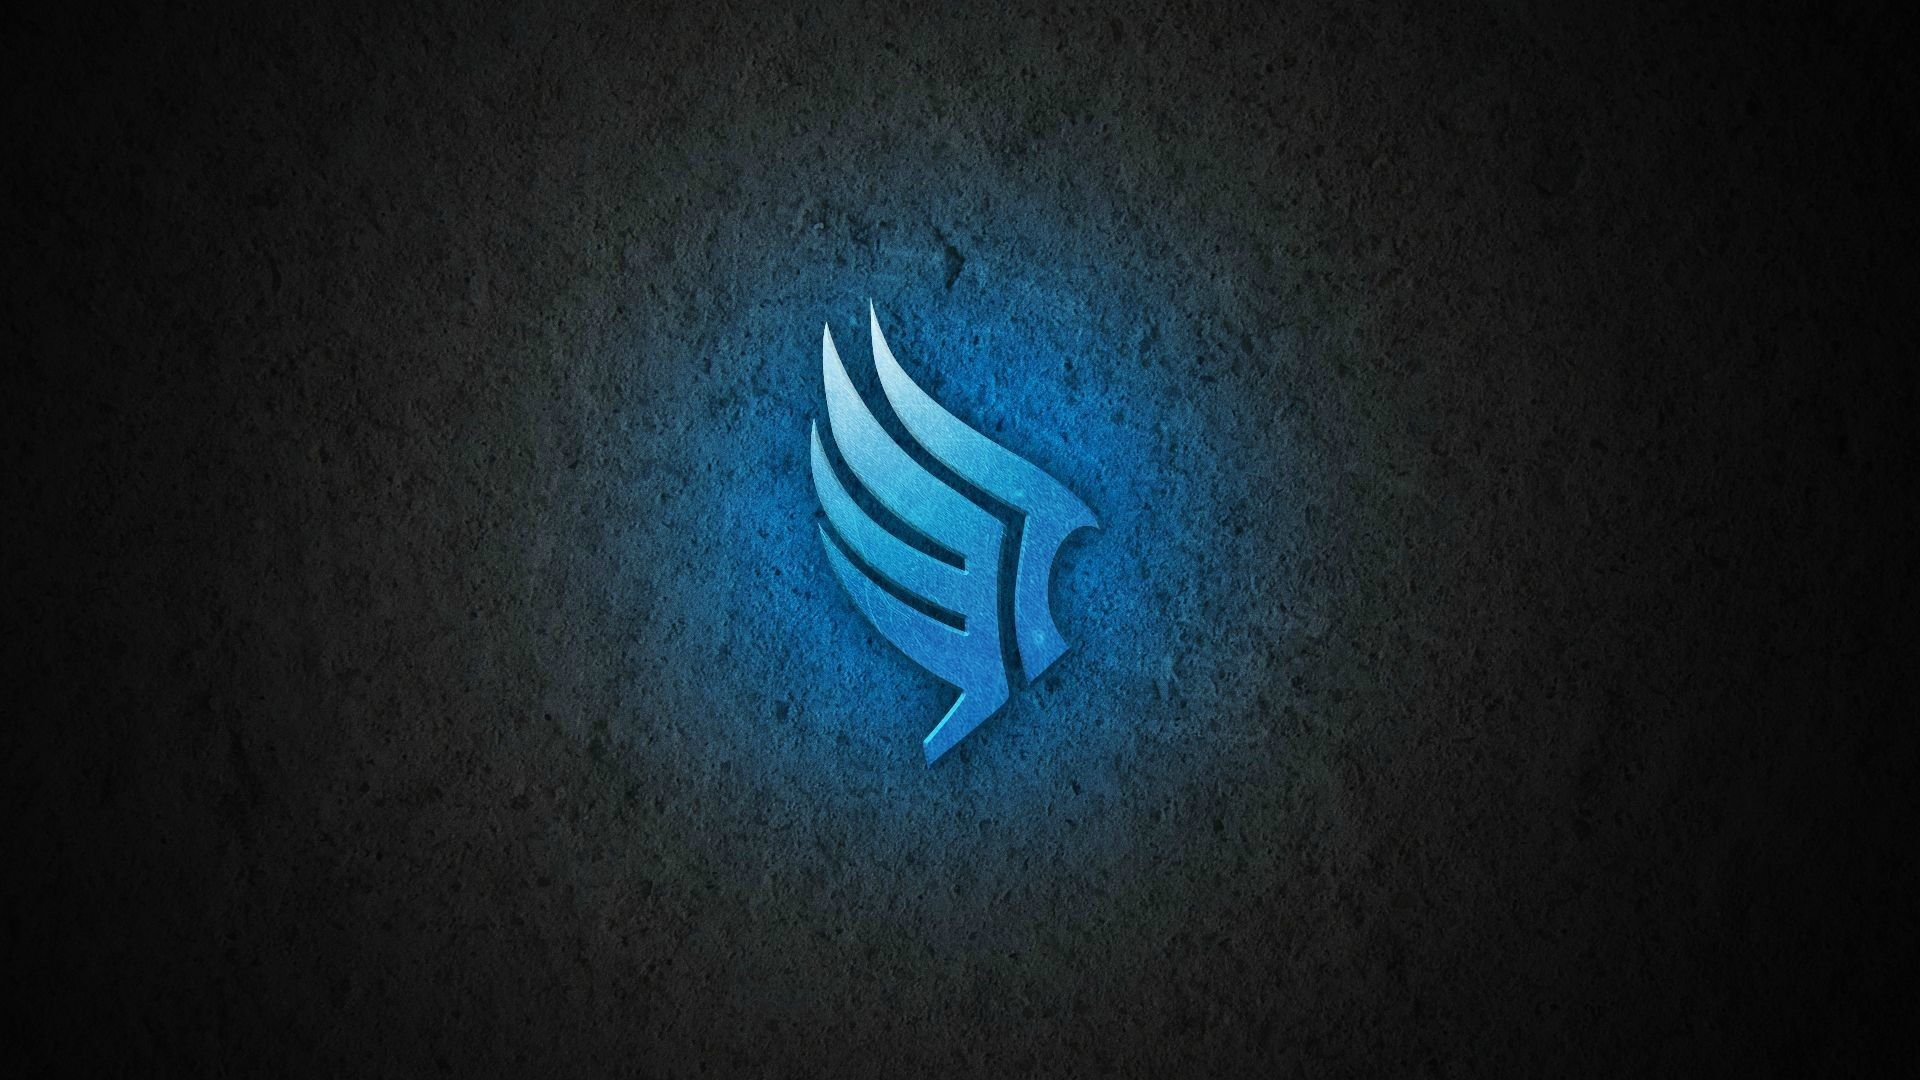 78 Blue Gaming Wallpapers On Wallpaperplay Gaming Wallpapers Retro Games Wallpaper Best Gaming Wallpapers